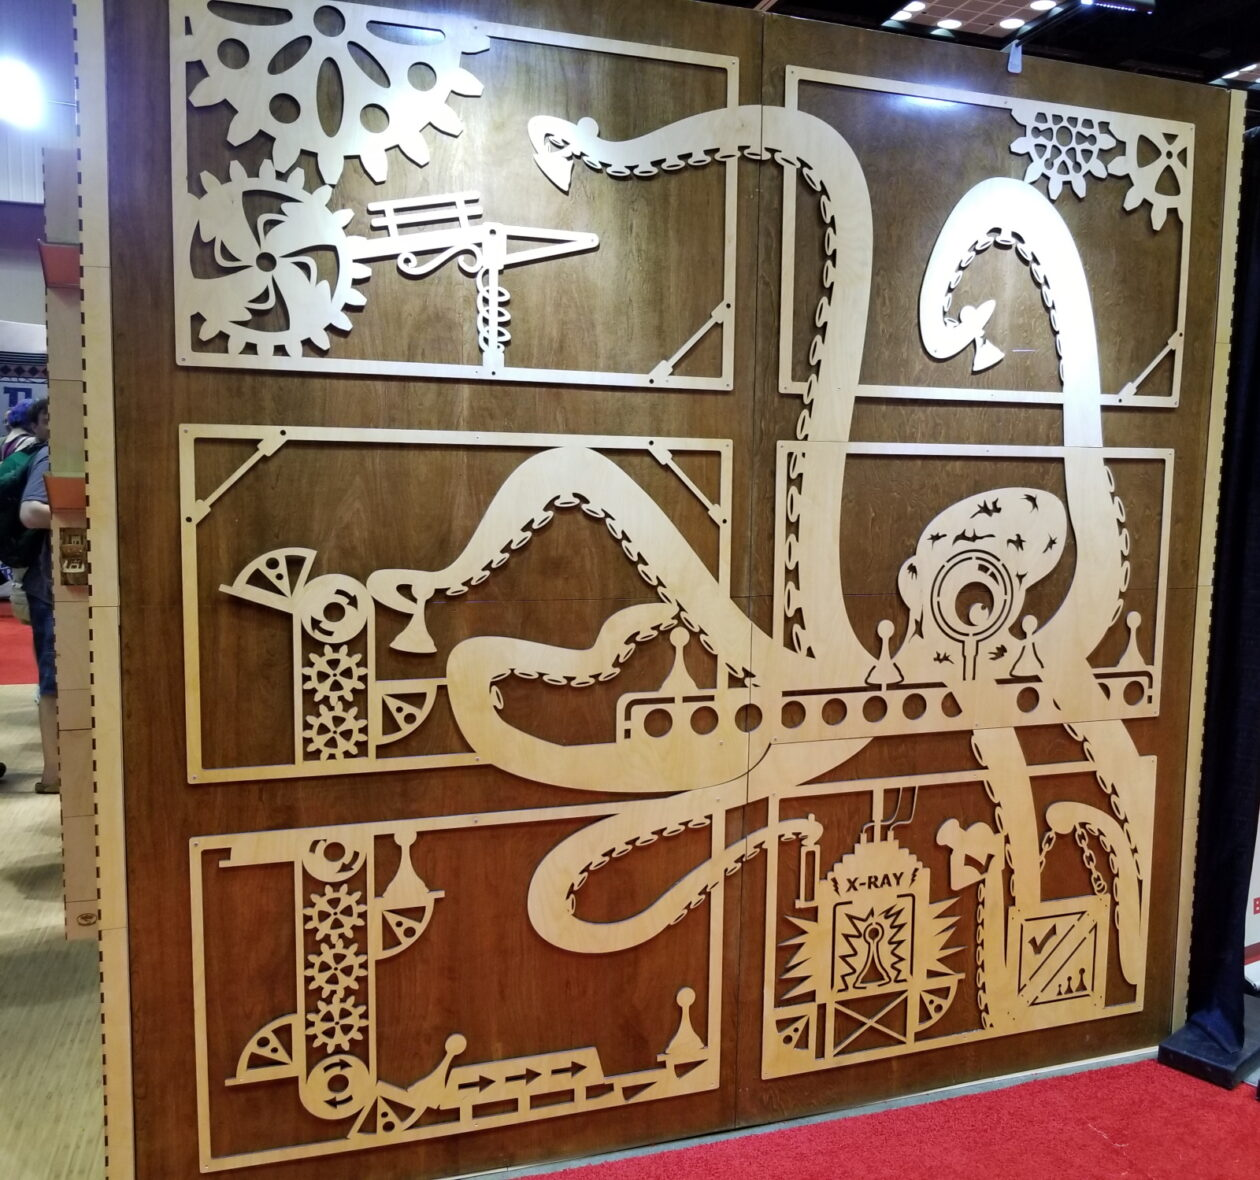 A large laser-cut octopus scientist display at Gen Con